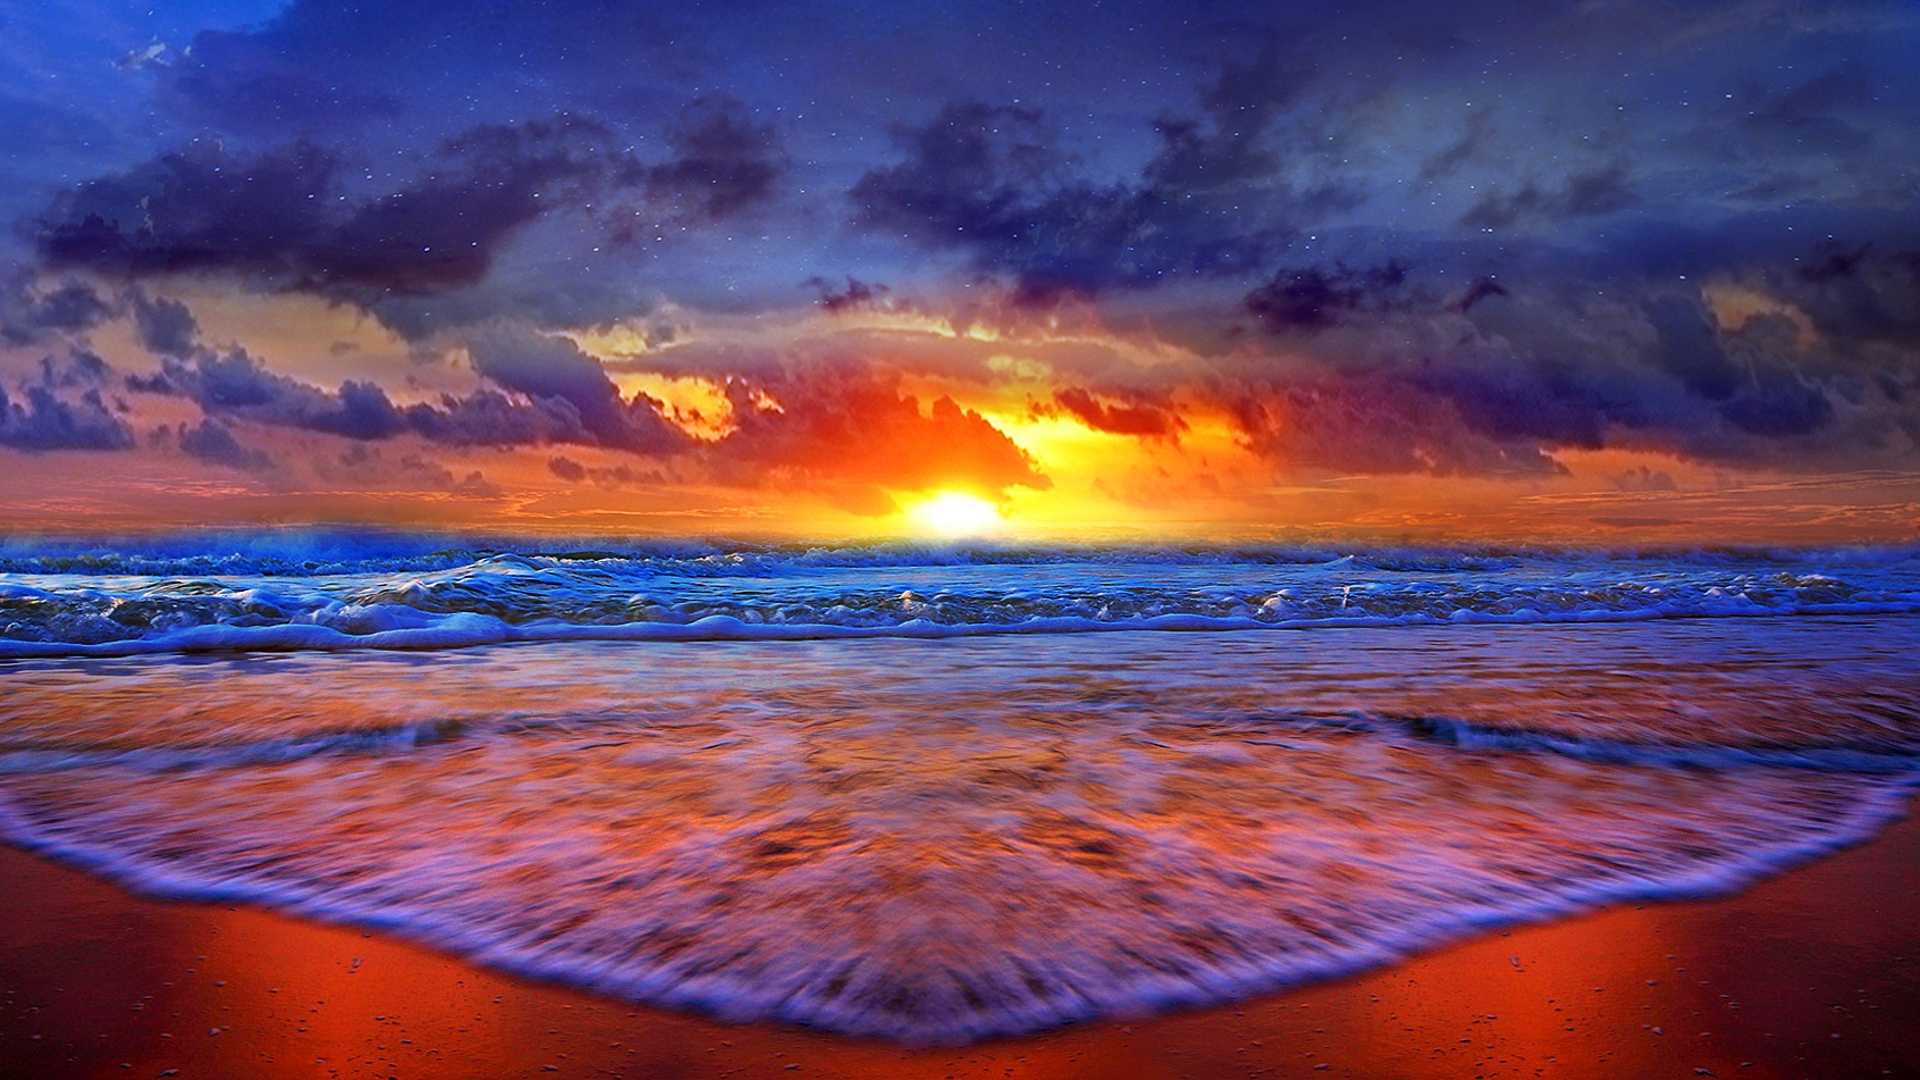 Beach Sunset Pictures Desktop Images amp Pictures   Becuo 1920x1080